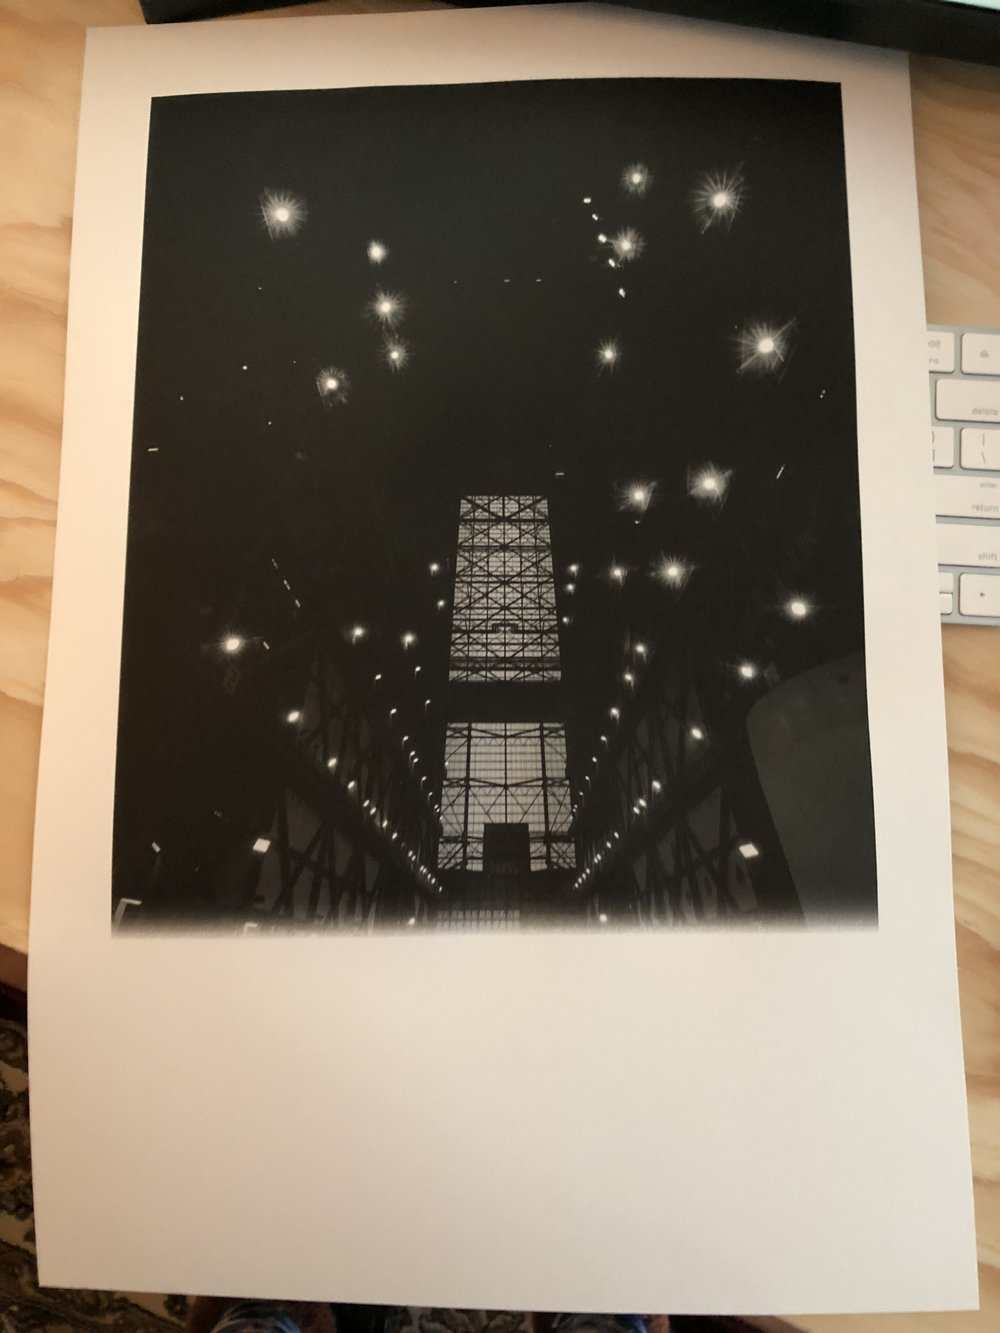 Image printed correctly (cut off to save ink, since it was a test on proofing paper).